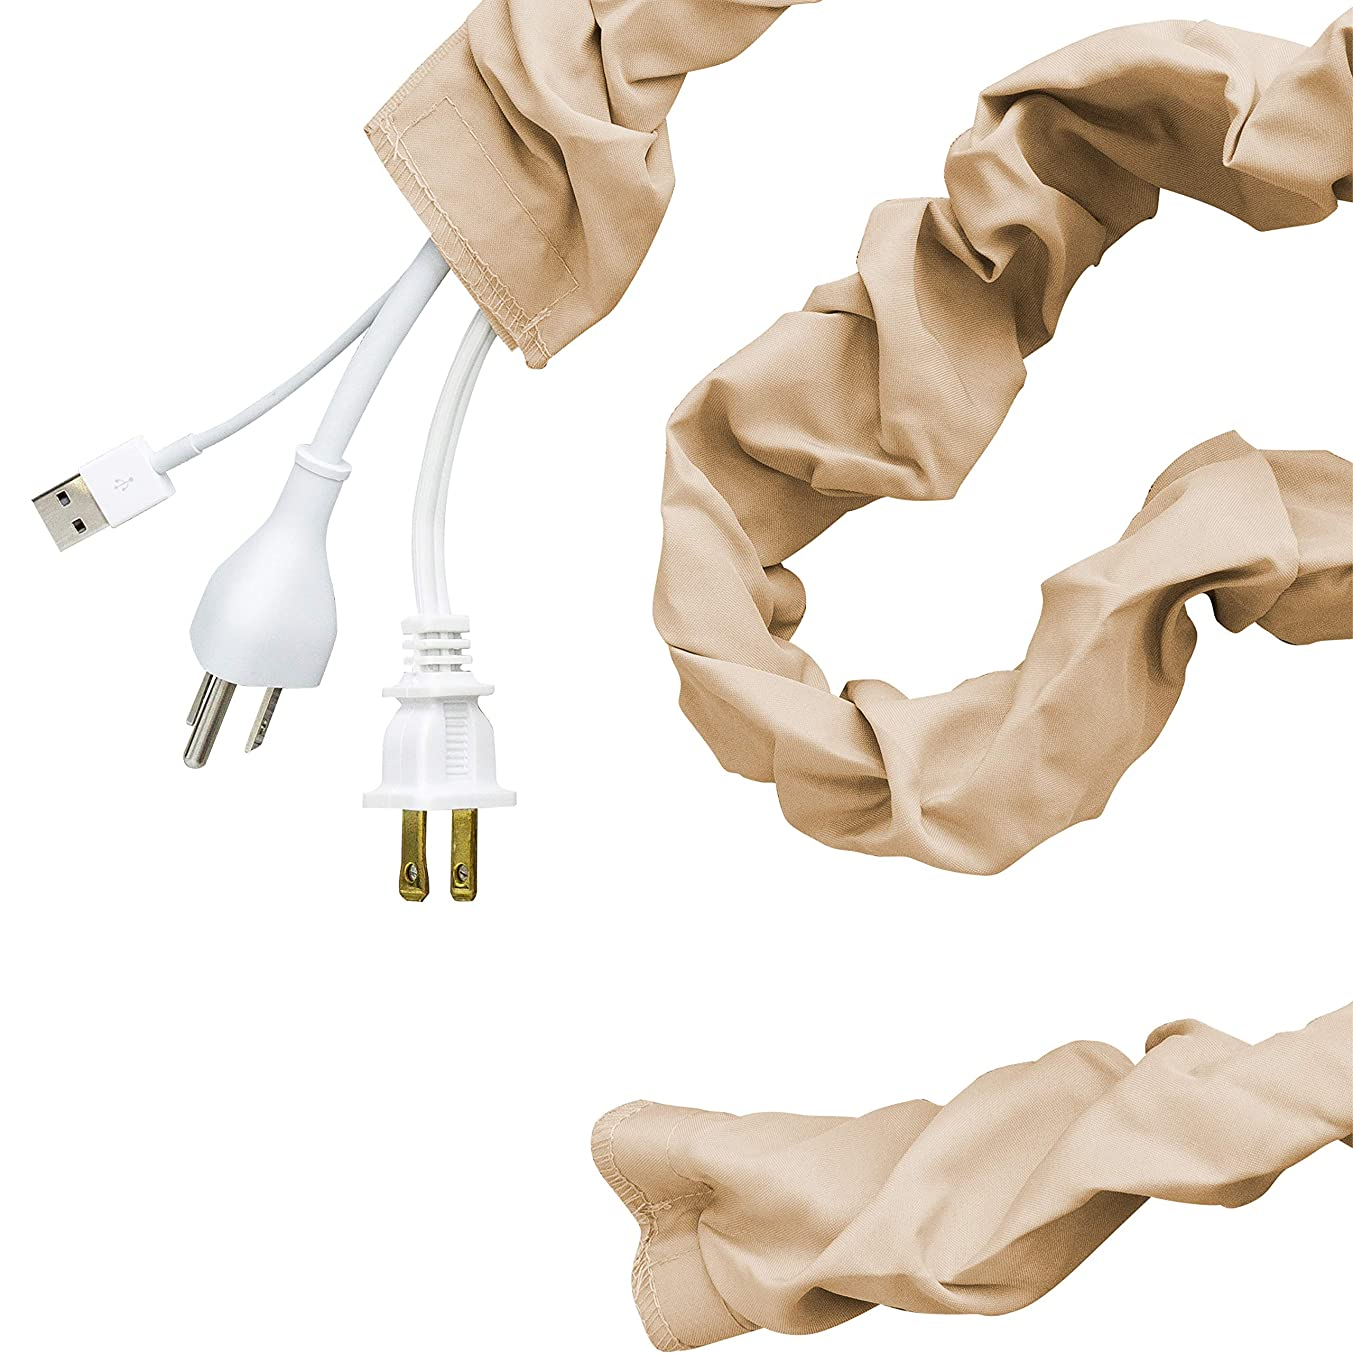 Cordinate Fabric Cord Cover, 6 ft, Hides Cables, Great for Lamps, Light Fixtures, and Desks, Cable Management, Easy Installation, Champagne, 40730